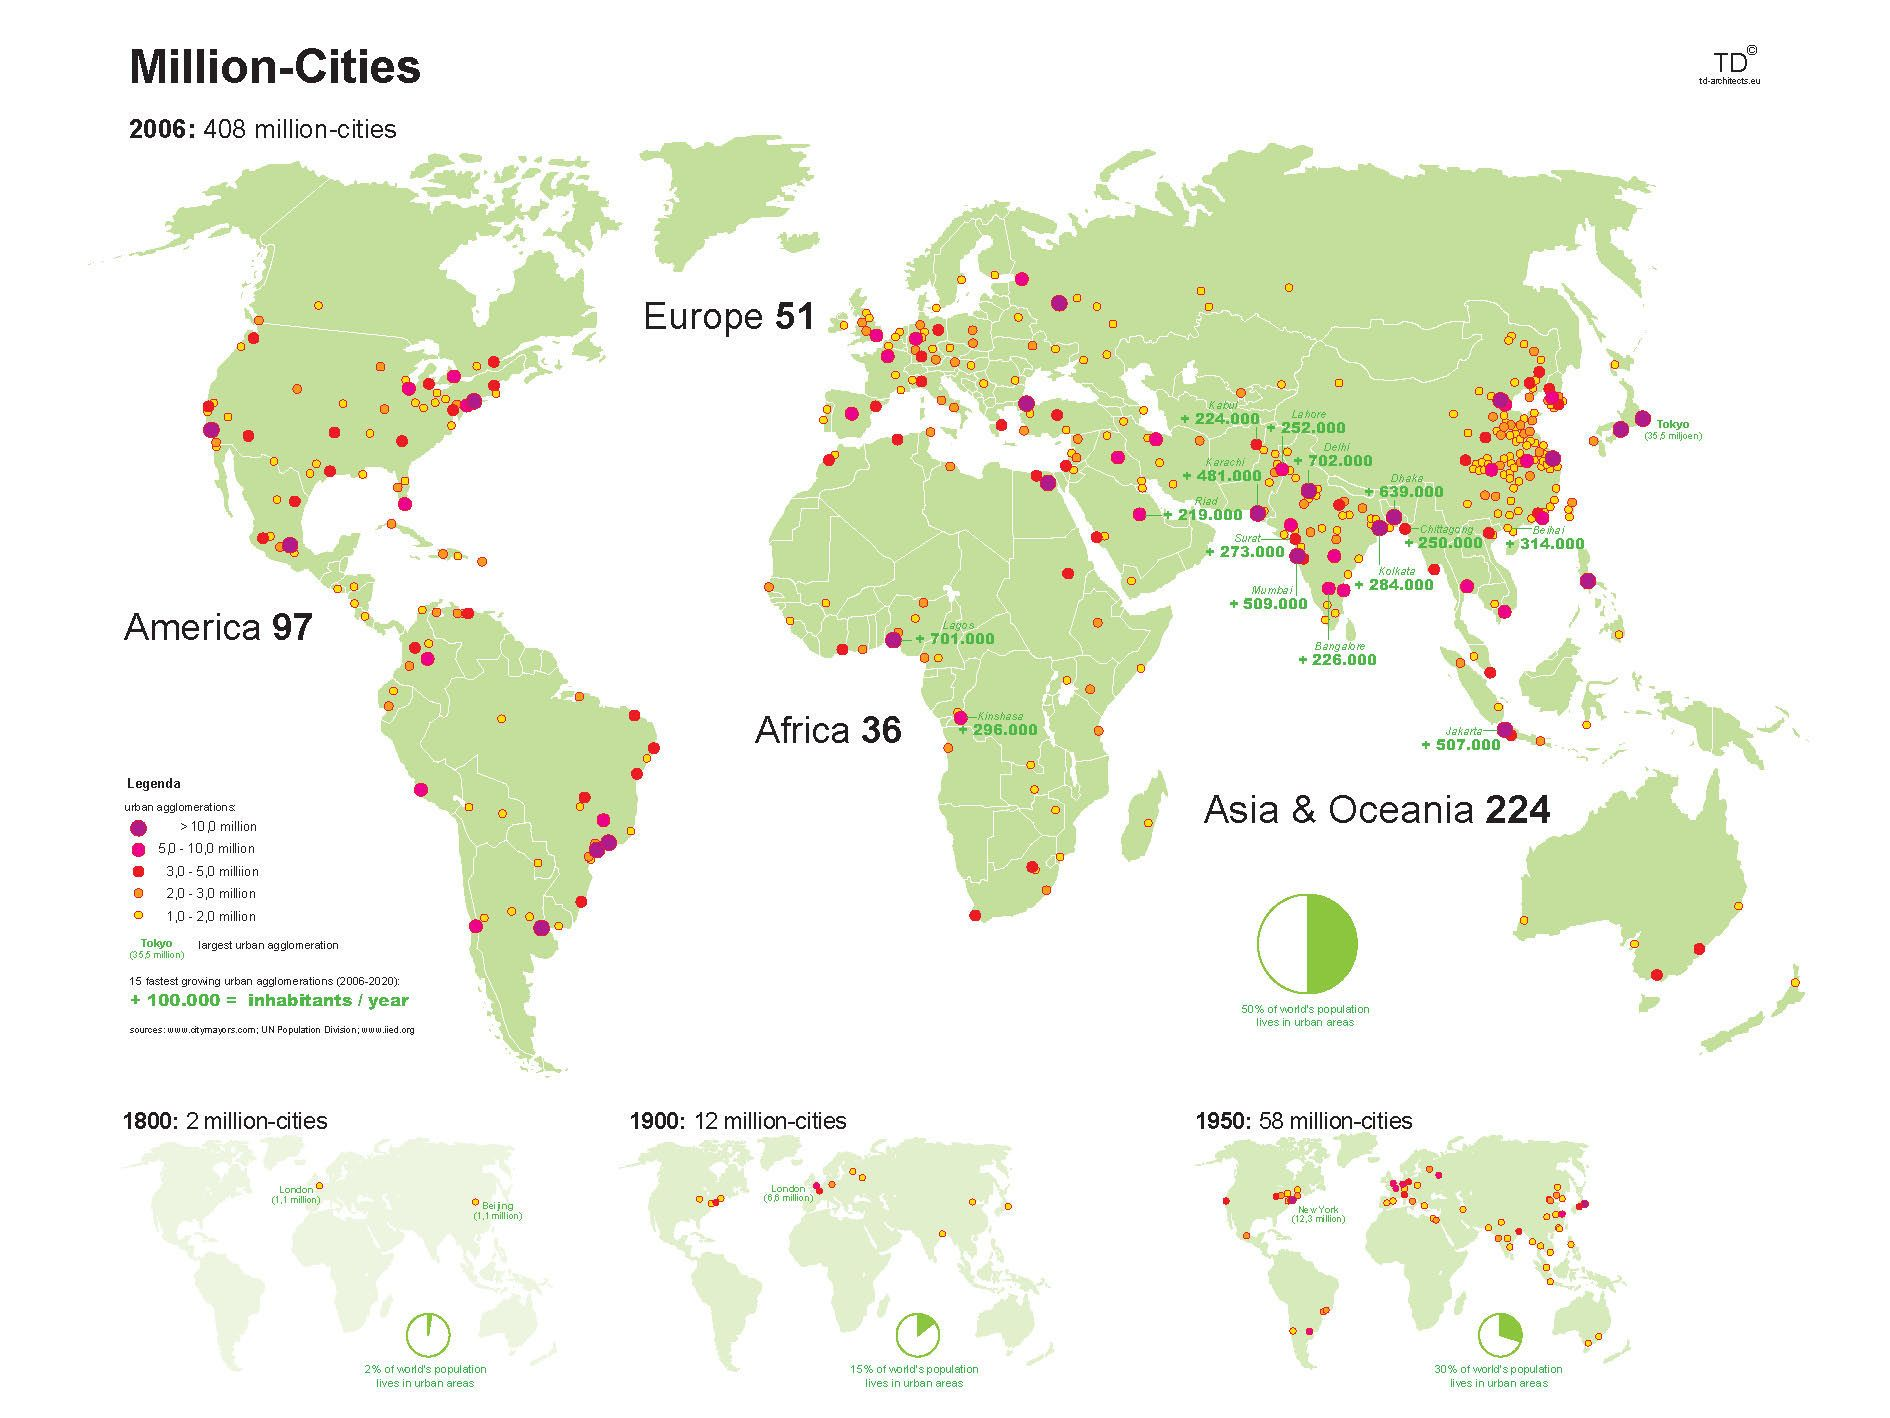 Maps showing cities with populations over 1 million over time 1800 maps showing cities with populations over 1 million over time 1800 1900 1950 gumiabroncs Image collections